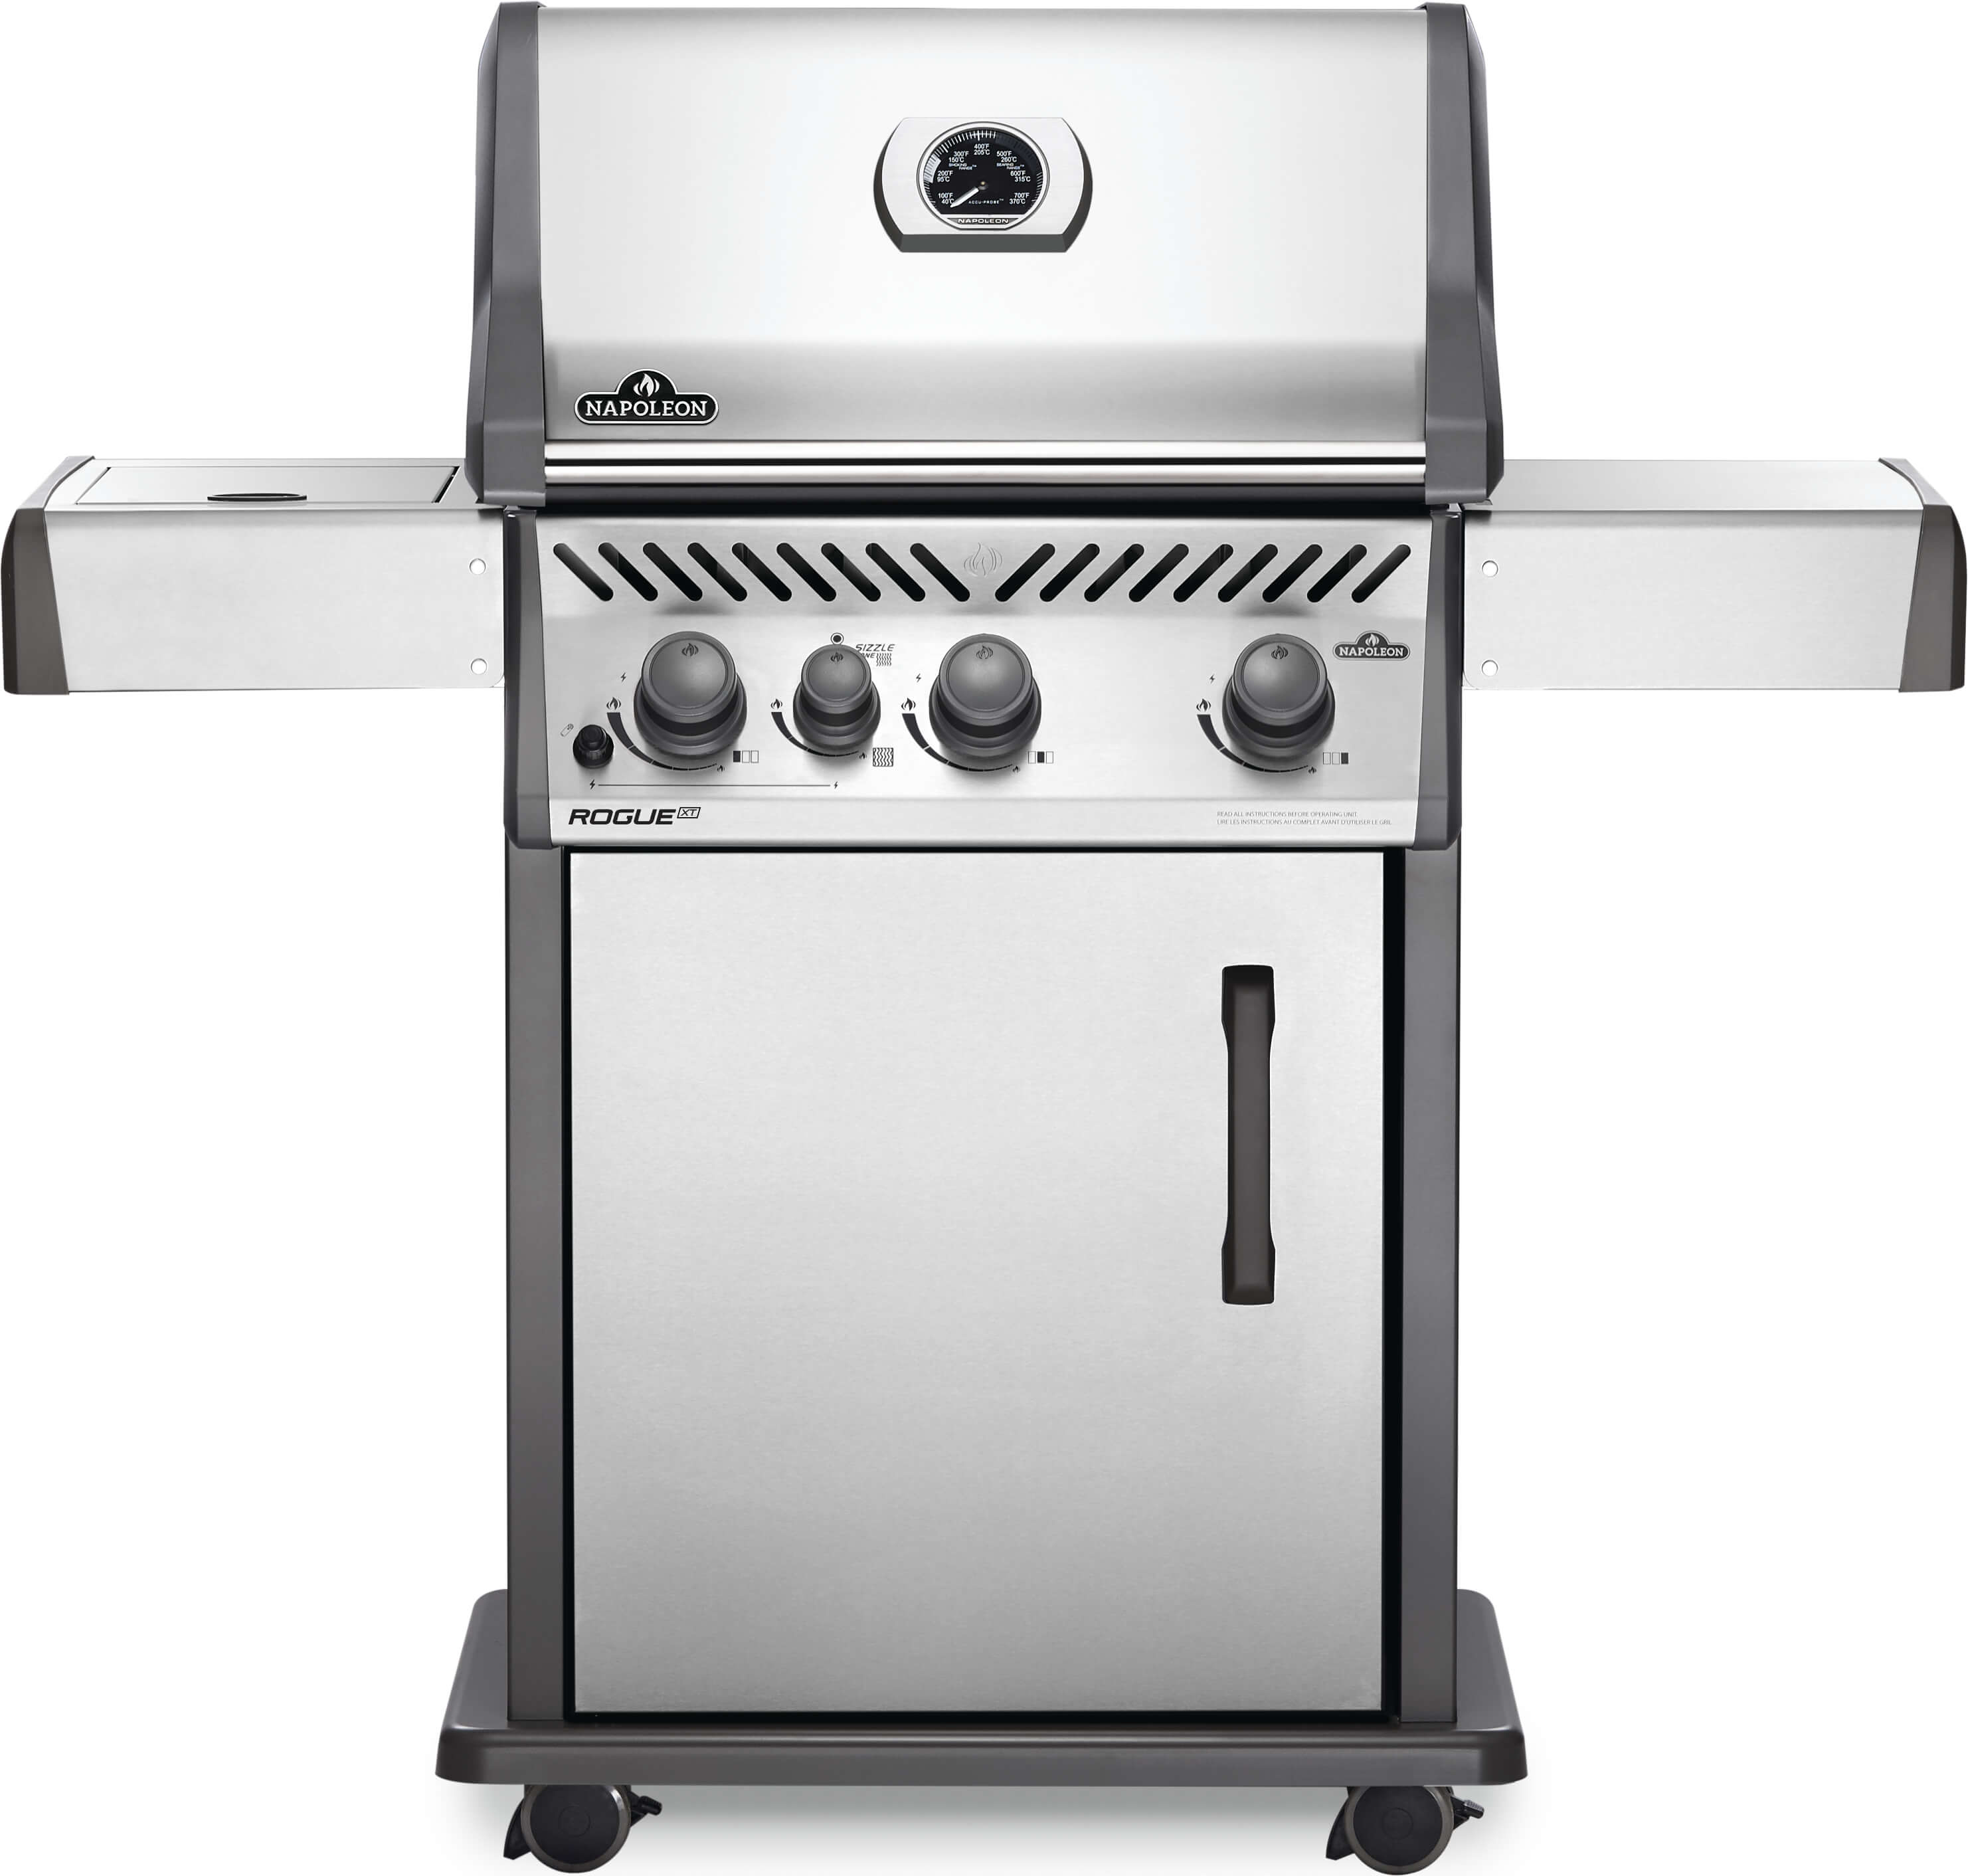 Rogue® XT 425 Propane Gas Grill with Infrared Side Burner, Stainless Steel